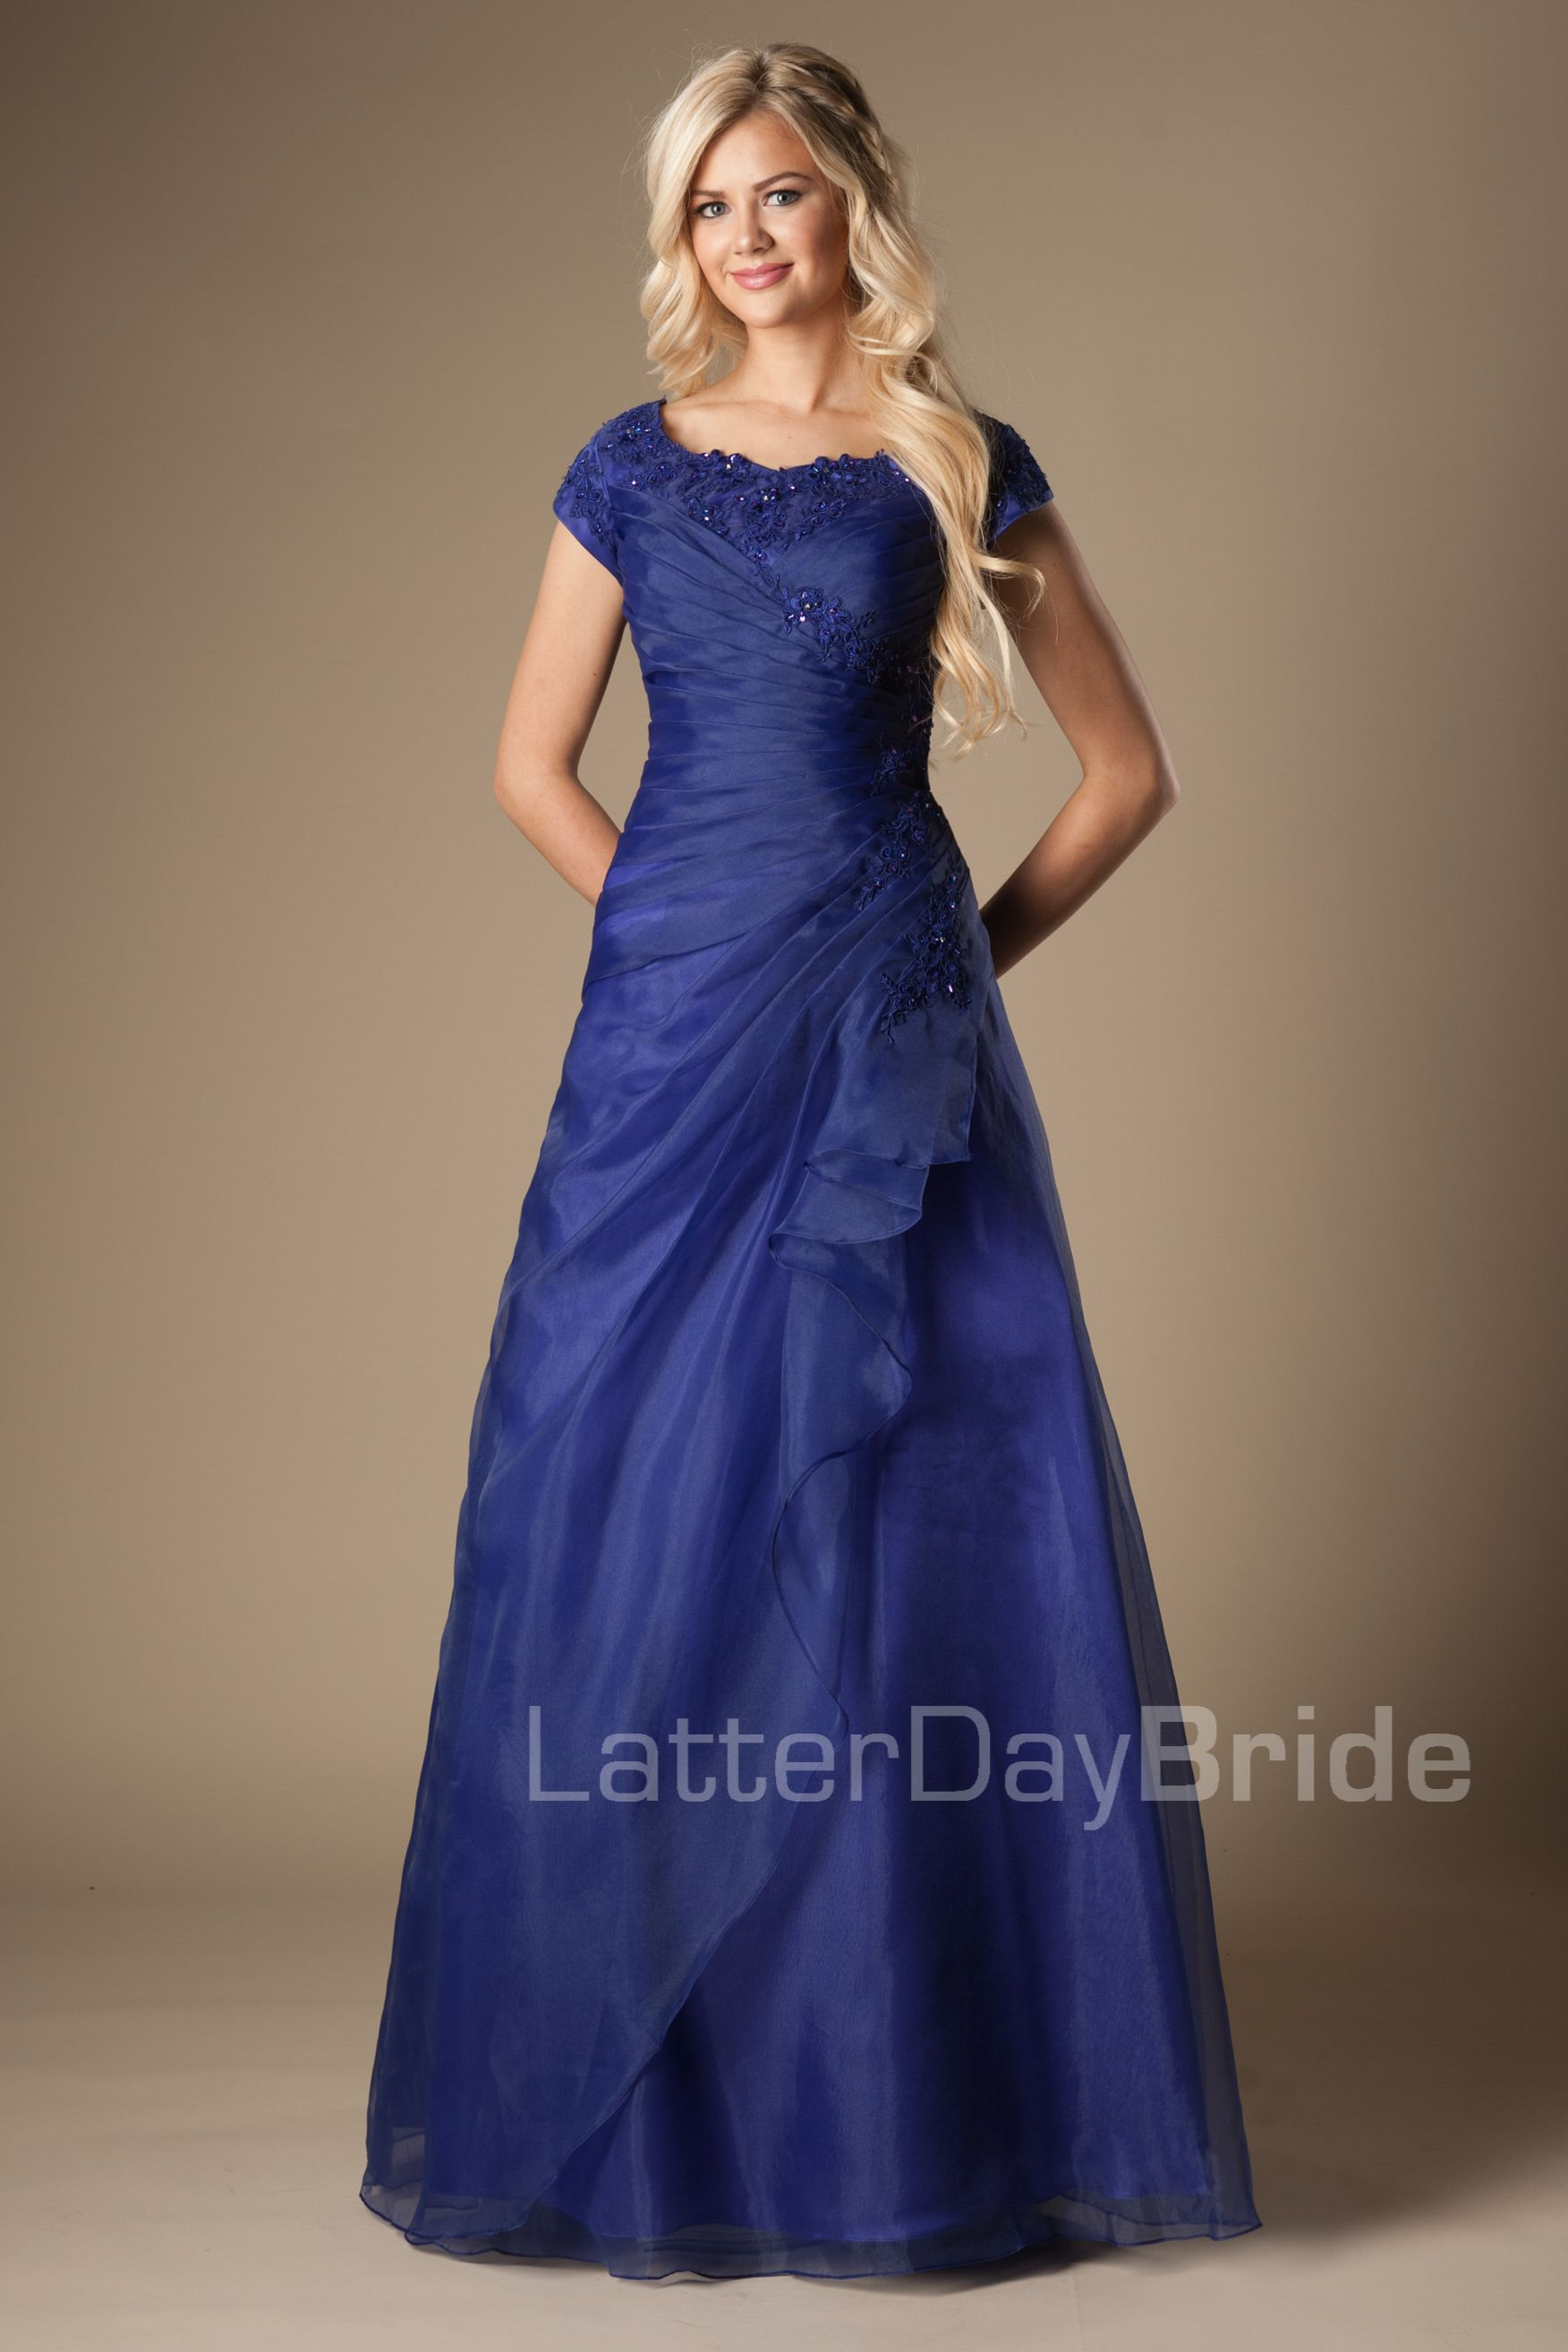 Modest prom dress madison purple frontg prom pinterest modest prom dress madison purple frontg ombrellifo Gallery